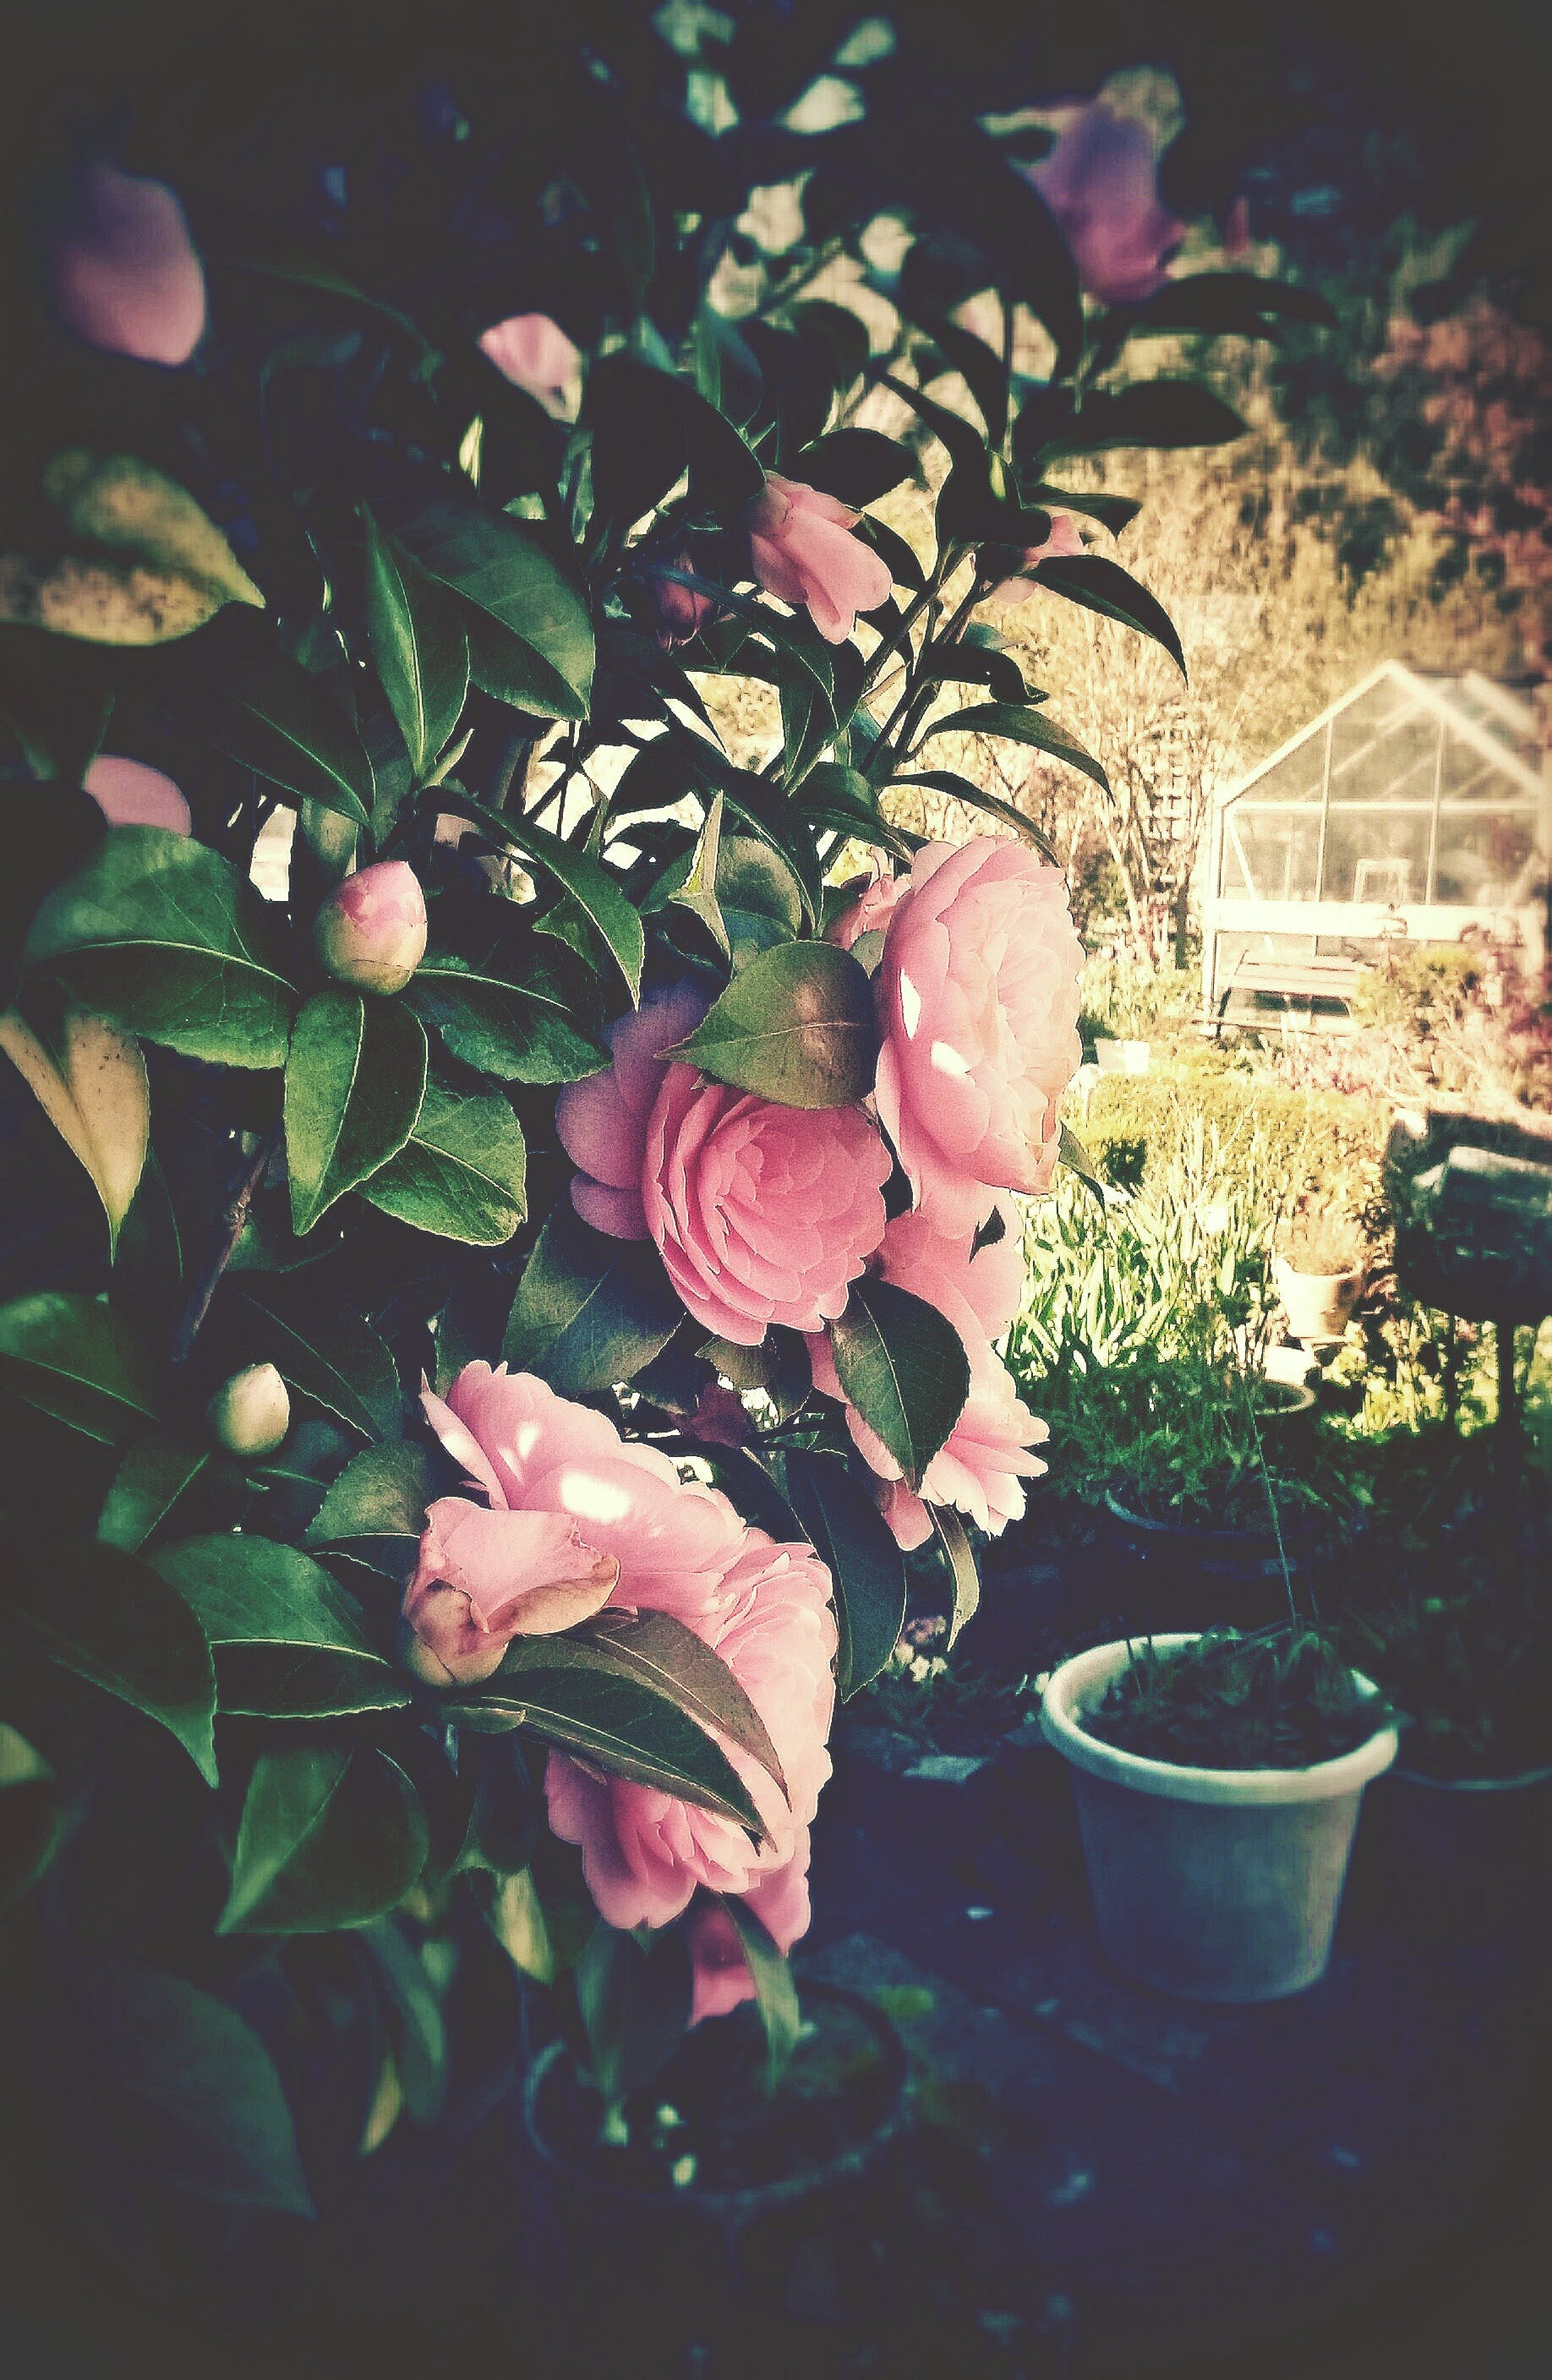 Free stock photo of flowers, garden, nature, pink flowers